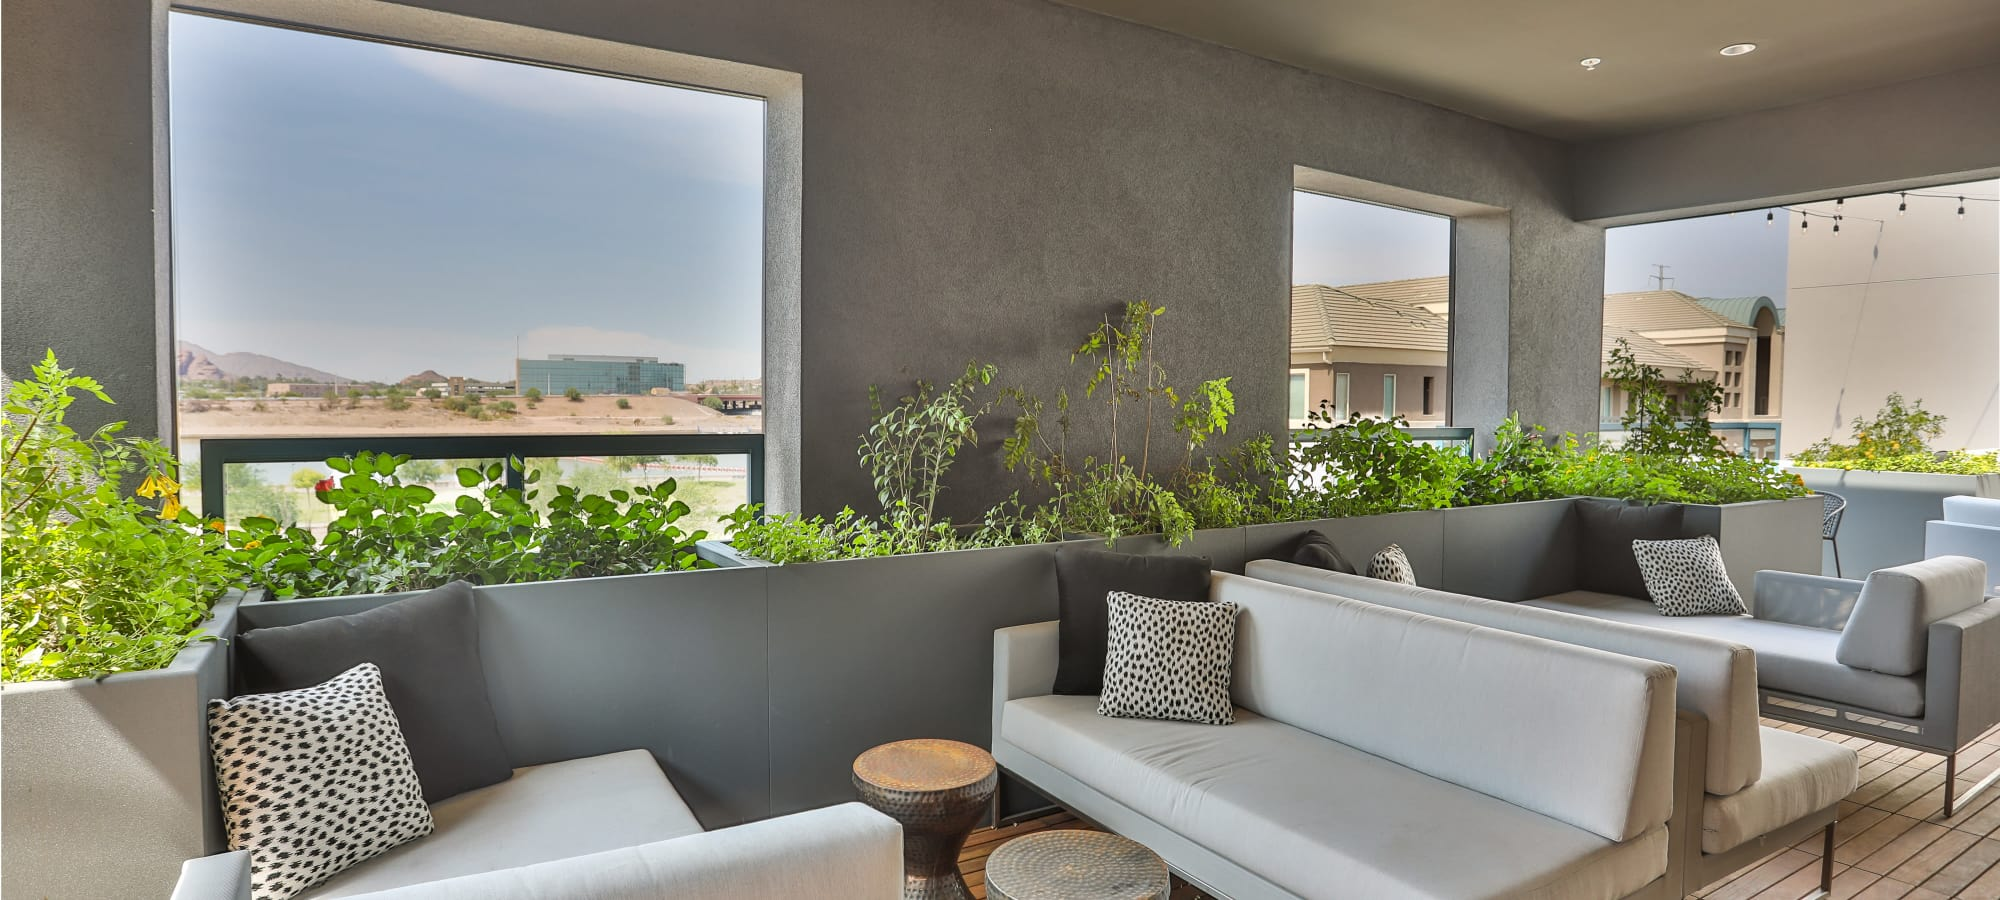 Covered rooftop seating with a gorgeous view at Lakeside Drive Apartments in Tempe, Arizona